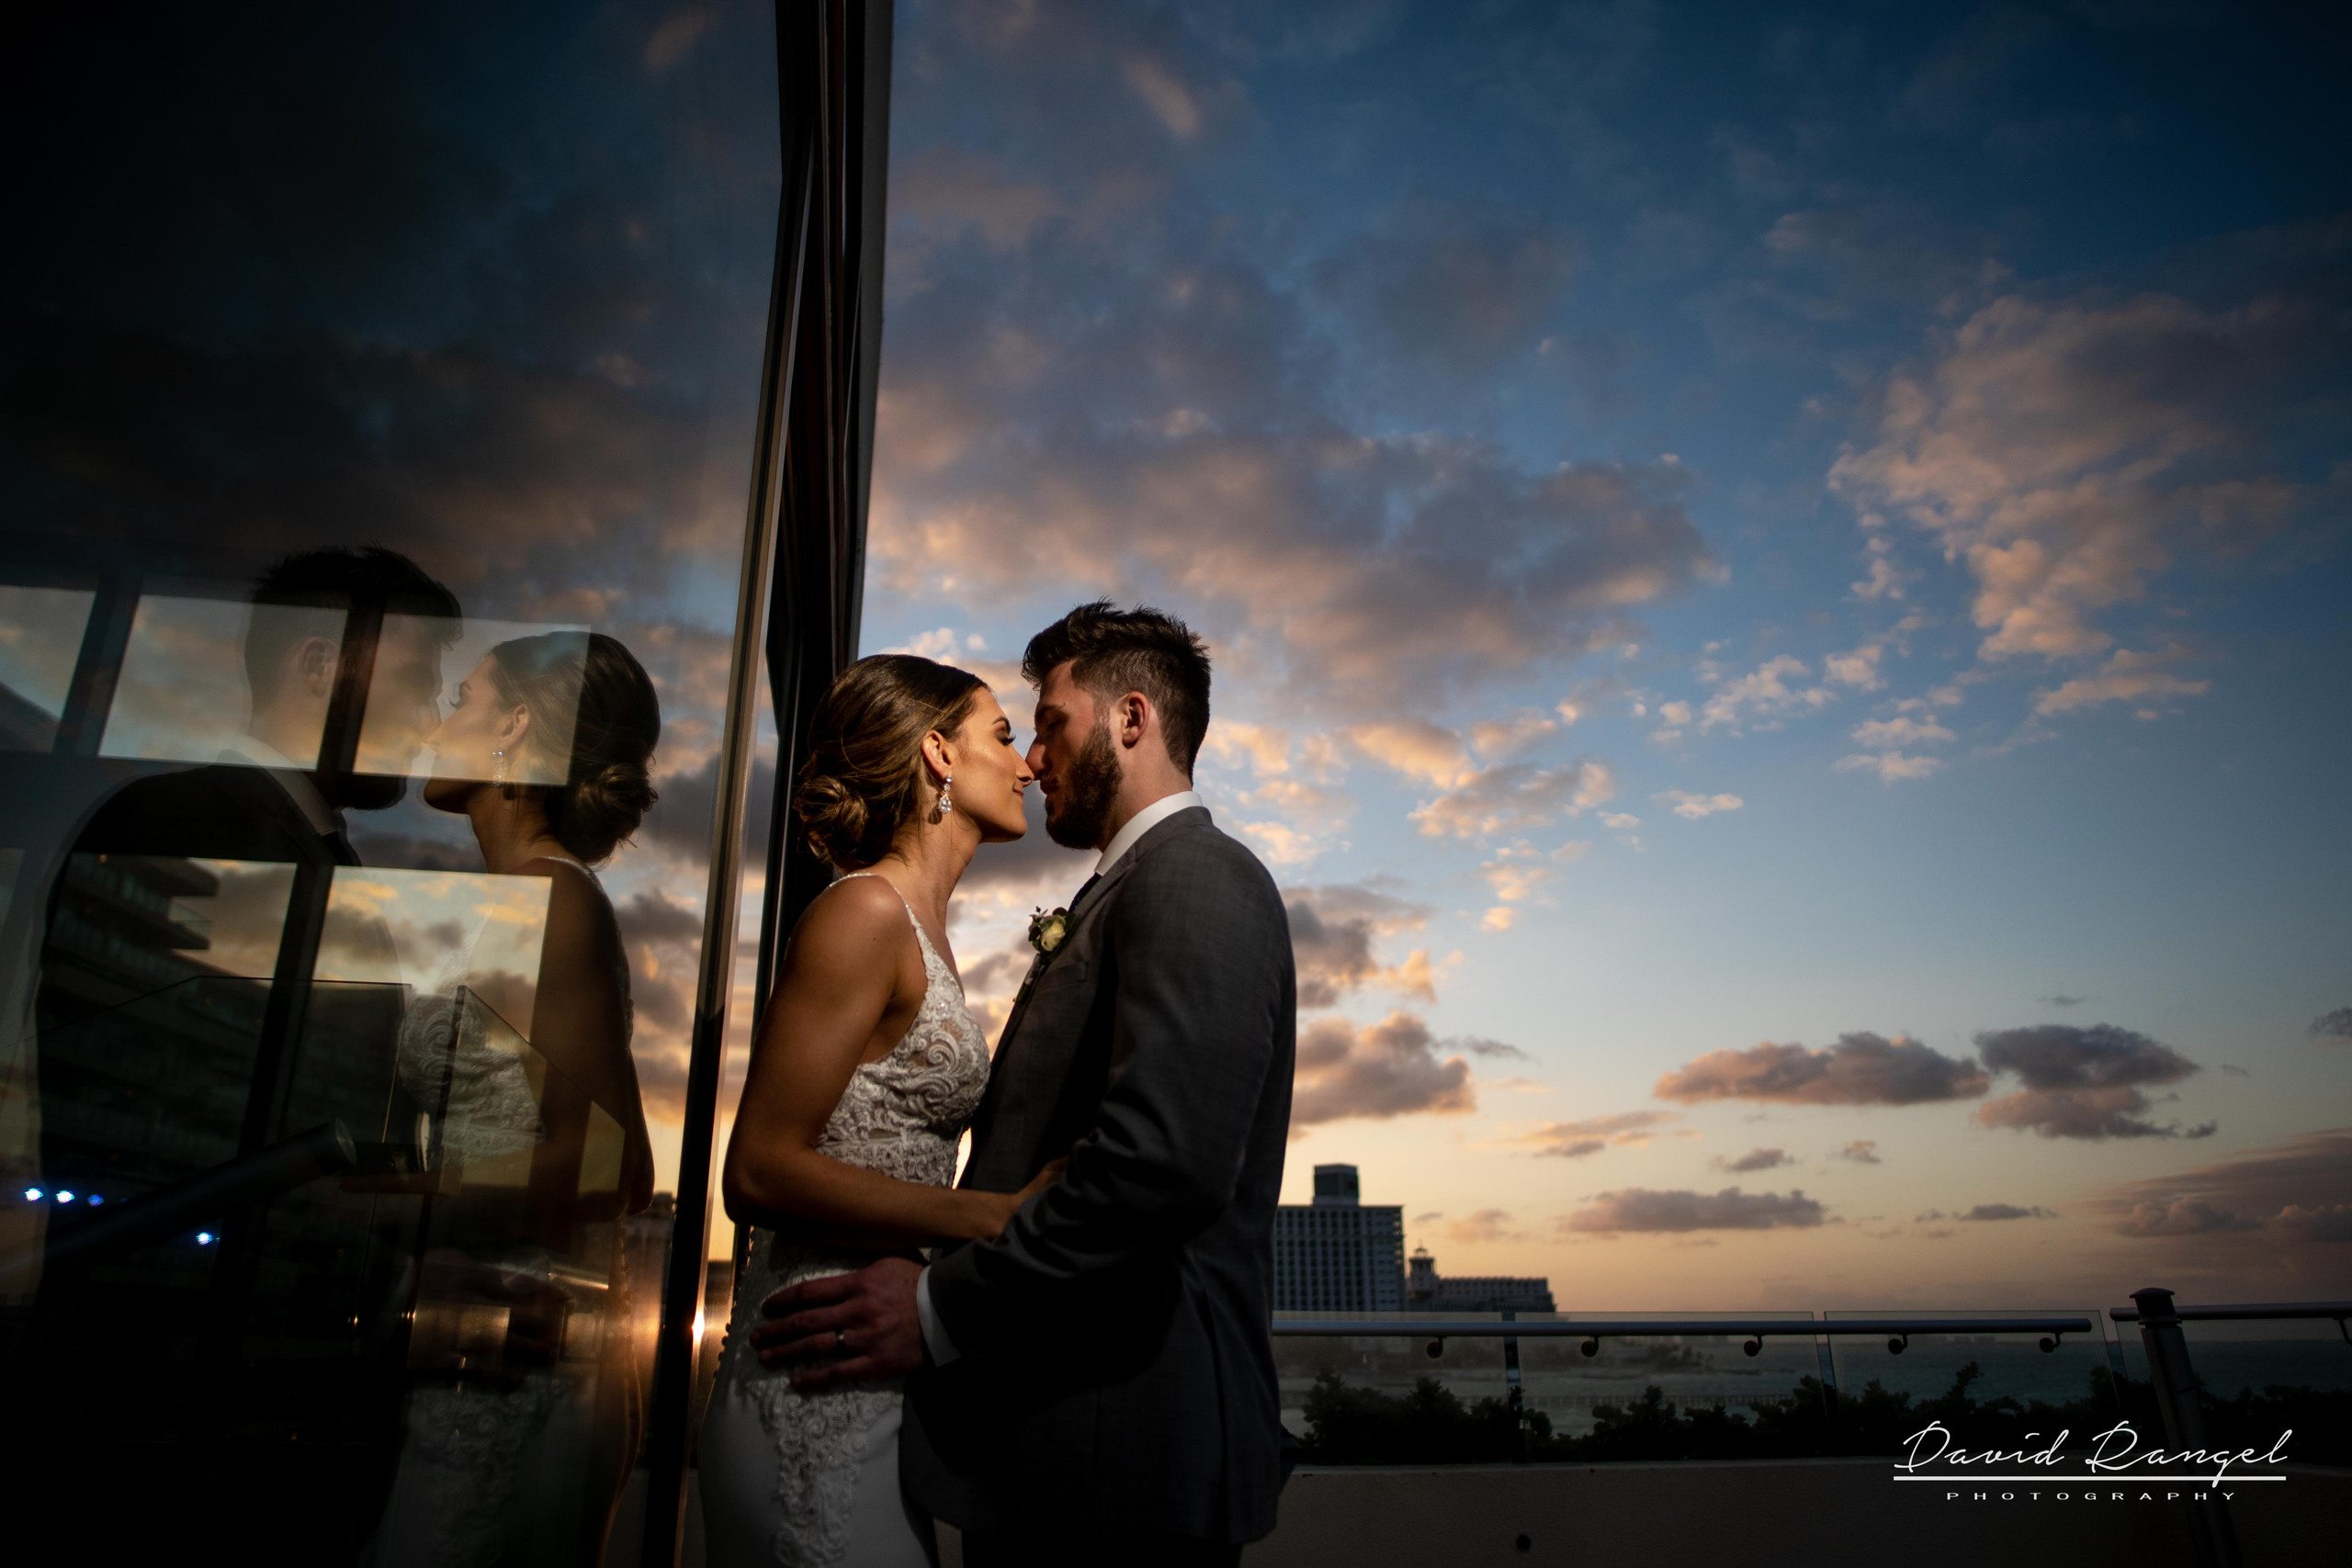 reception+hyatt+ziva+cancun+bride+groom+sunset+photo+reflection